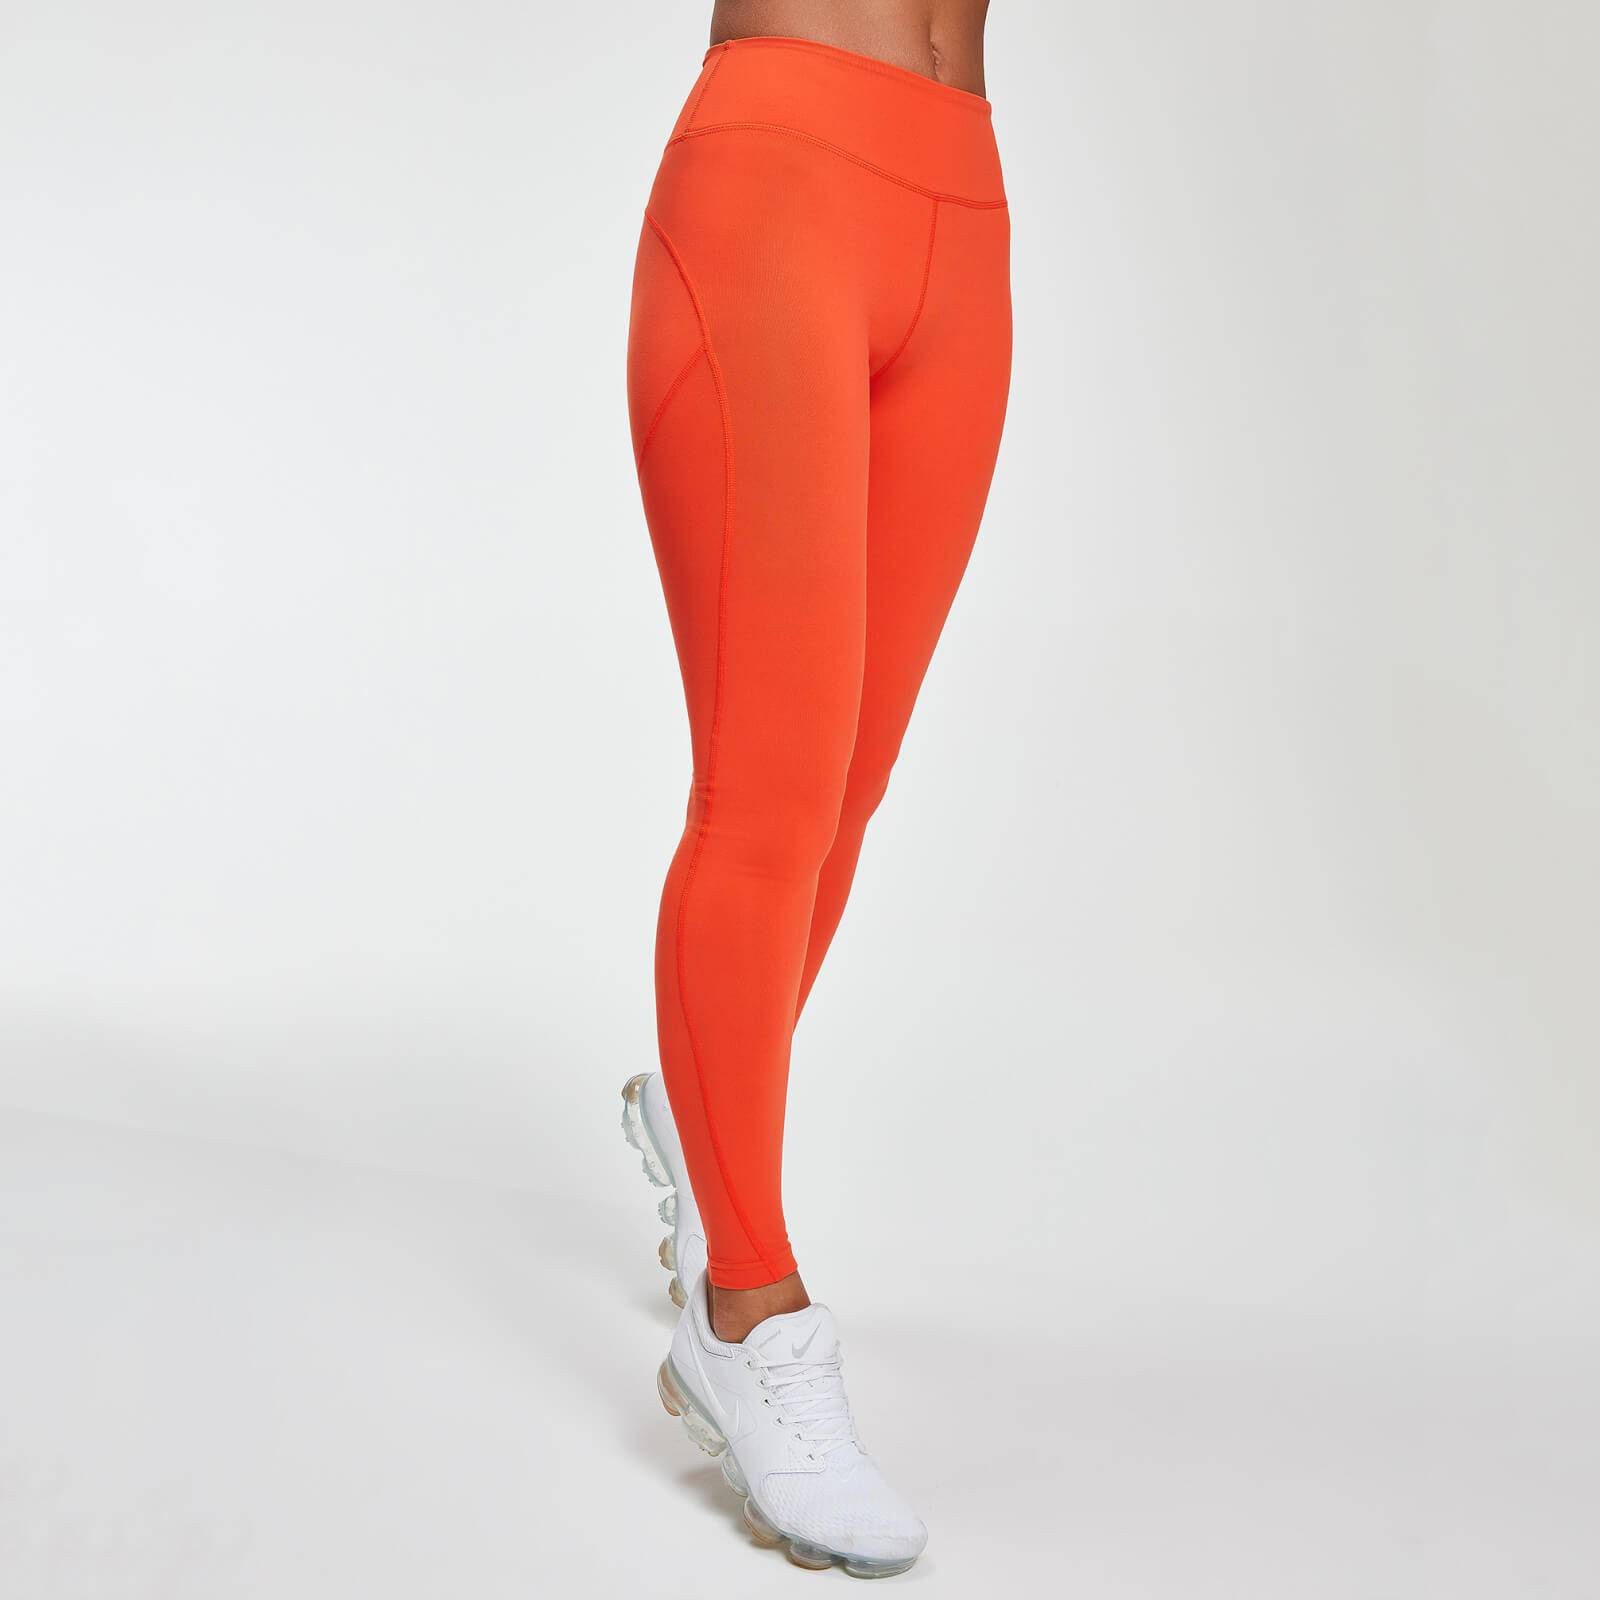 Myprotein Leggings Power - Fiamma viva - M